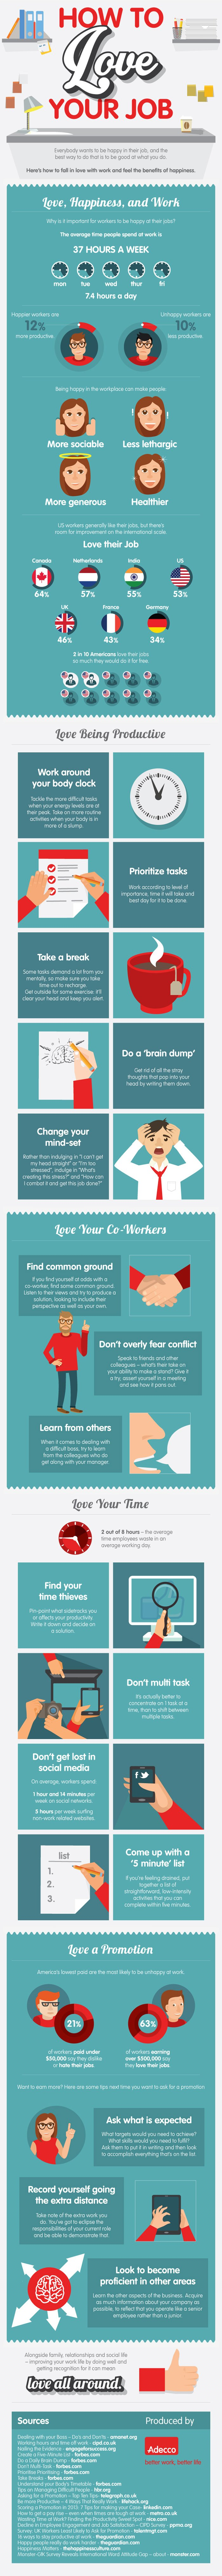 how-to-love-your-job-infographic